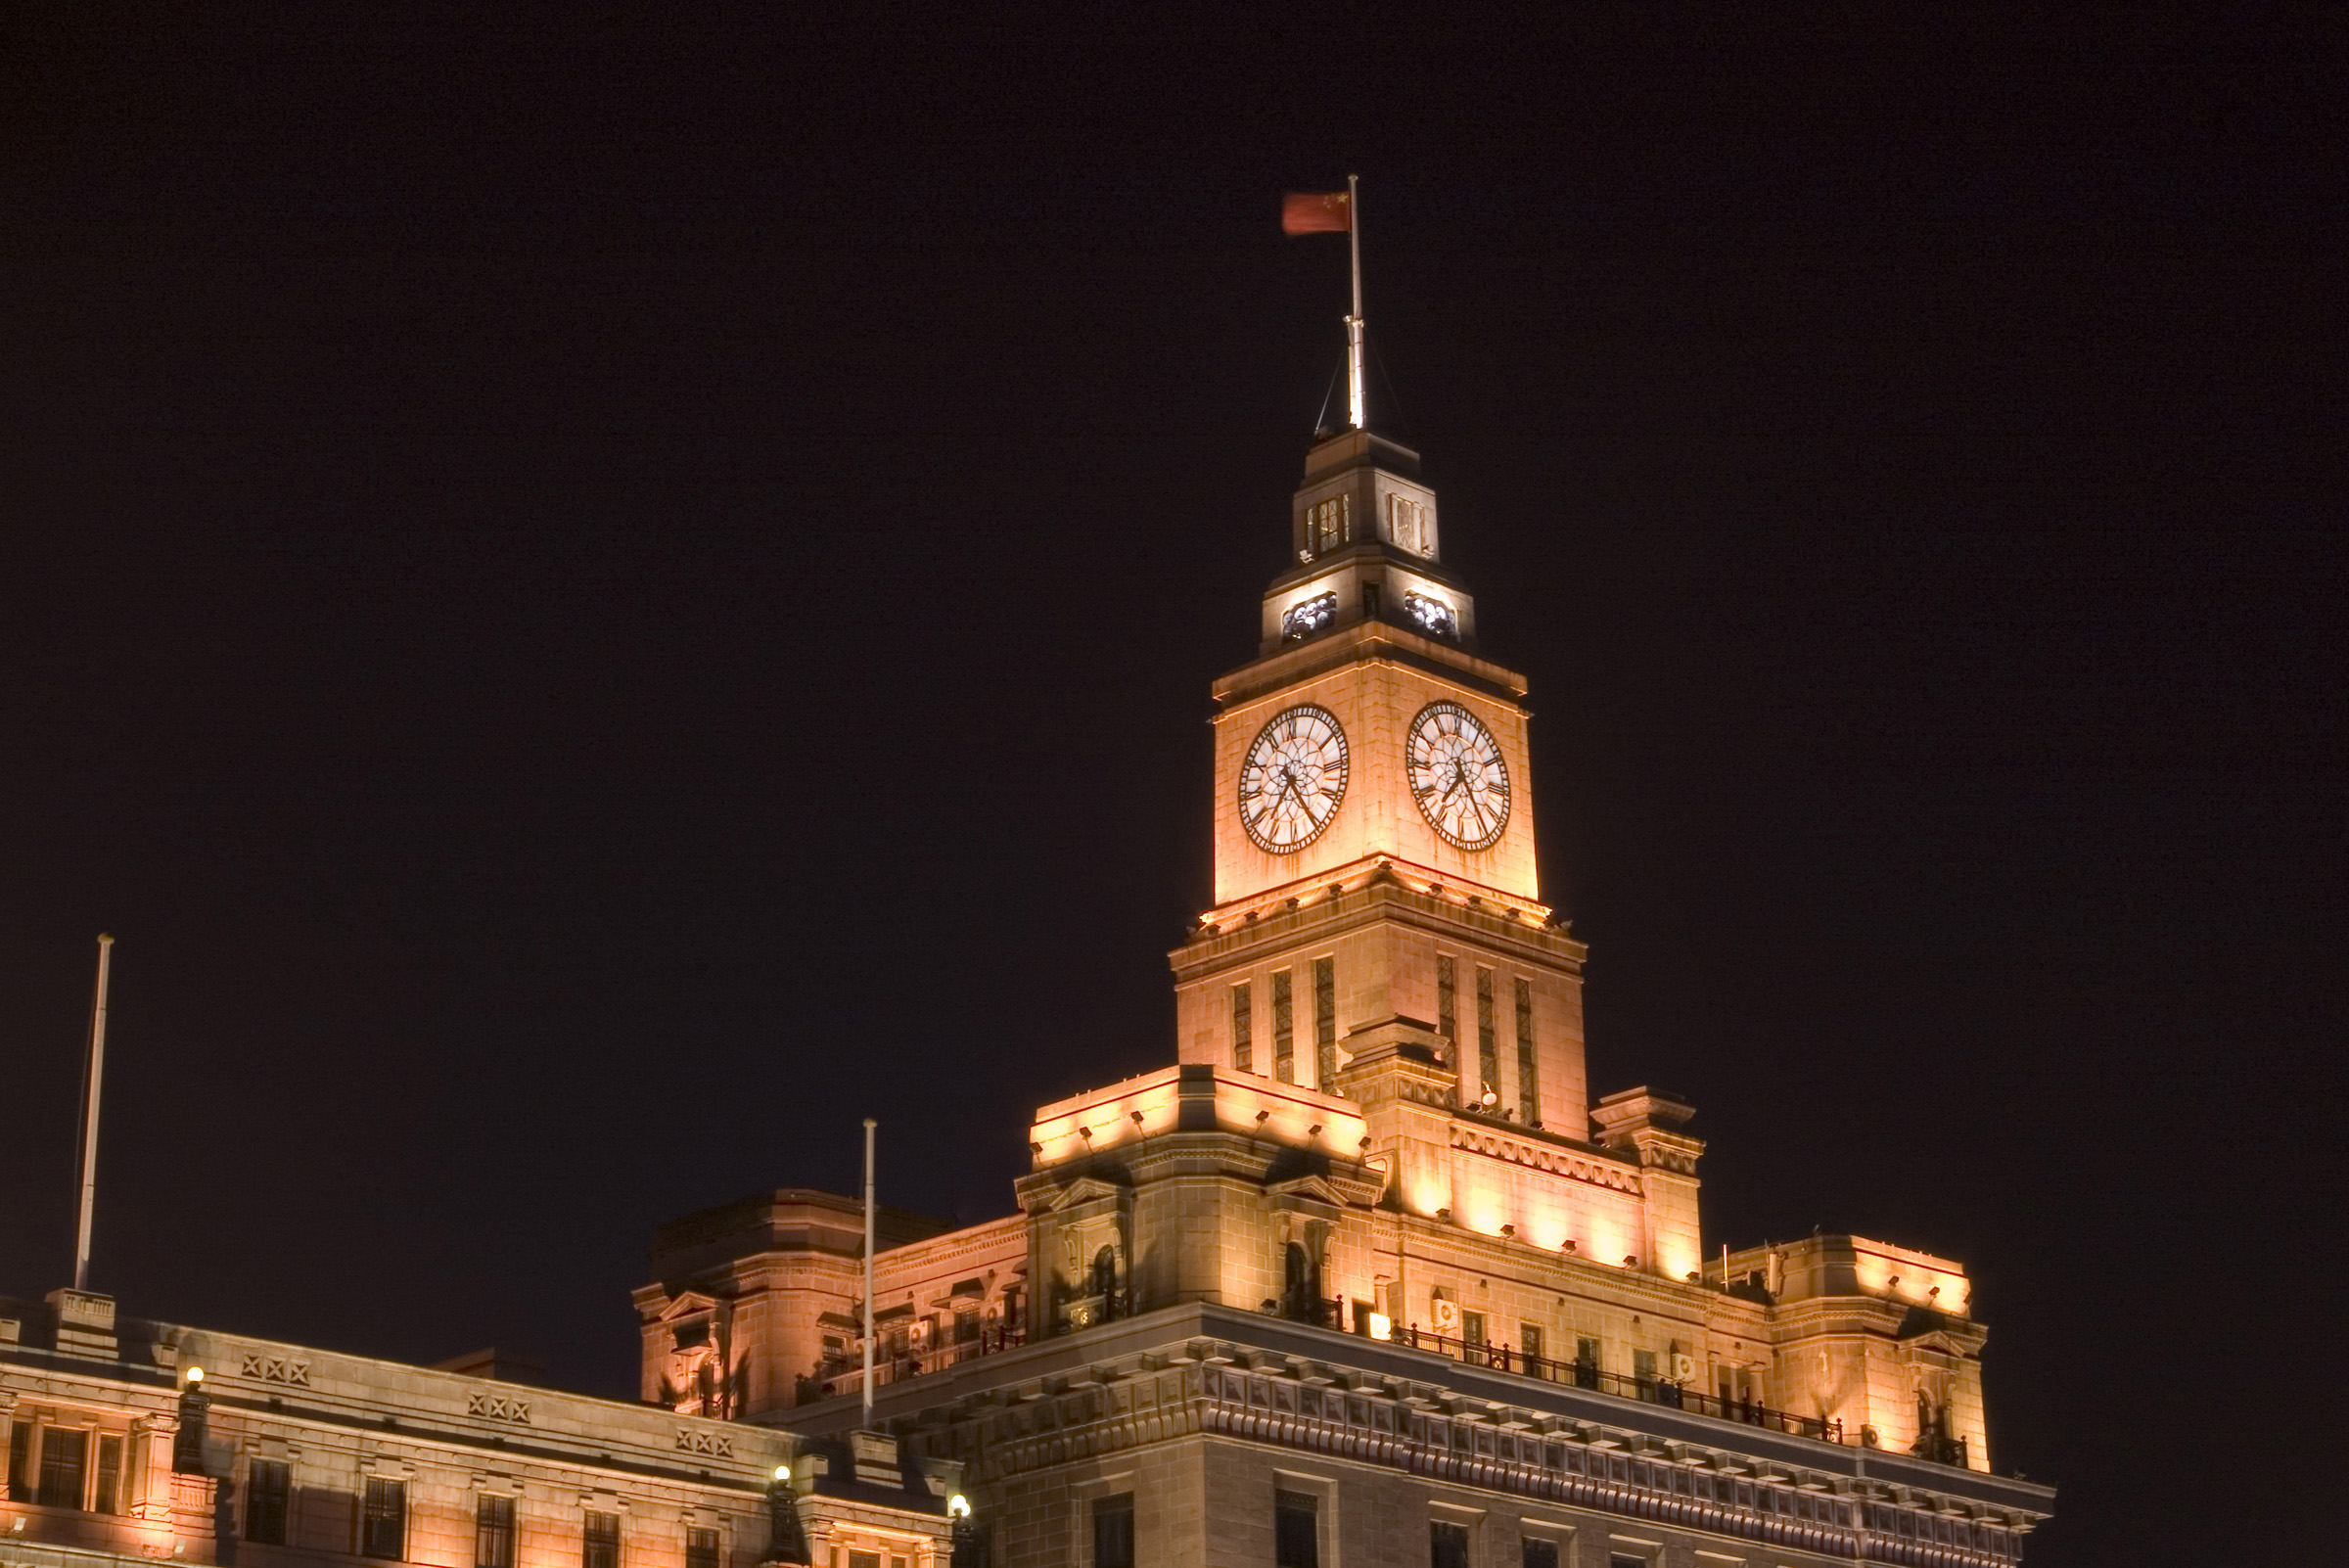 Customs House, or the Bund, Shangai, China illuminated at night with a flag flying at full mast above